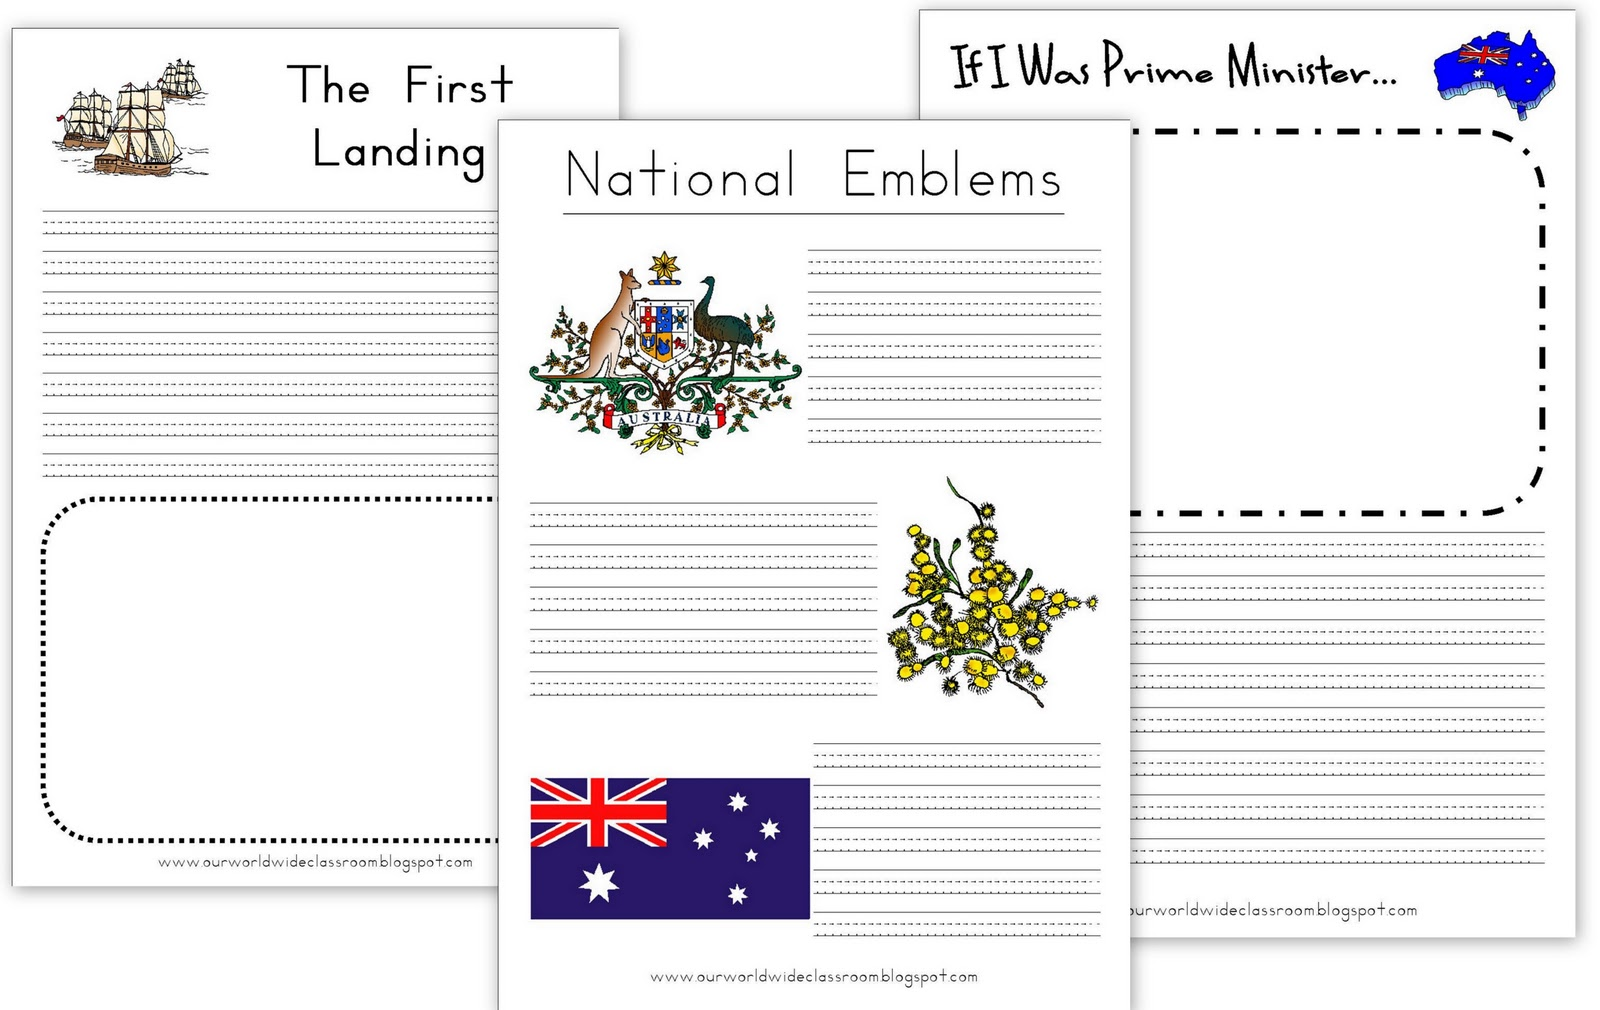 FREE Printable Colouring Sheets for Holiday Fun besides 3 History Lesson Plans for Grade 3   Special Celetions additionally Australia worksheets besides Free Printable Australia Day Learning Packet together with Australian states and territories scramble   Australia   Australia furthermore Clean Up Australia furthermore Literature Project Australia   3 Working with the novel – Toller as well Top Australia Day resources   Tes further Teacher Resources and Clroom Games    Teach This likewise  besides 20 Ideas for Australia Day Crafty Fun   The Empowered Educator additionally  additionally 25 Resources and Ideas for Teaching Australia Day   Teaching Maths also Australia Themed Free Printables    Montessori Nature furthermore australia worksheets – egyptcities info also Memorial Day Worksheets for Kids   Woo  Jr  Kids Activities. on australia day worksheets for teachers